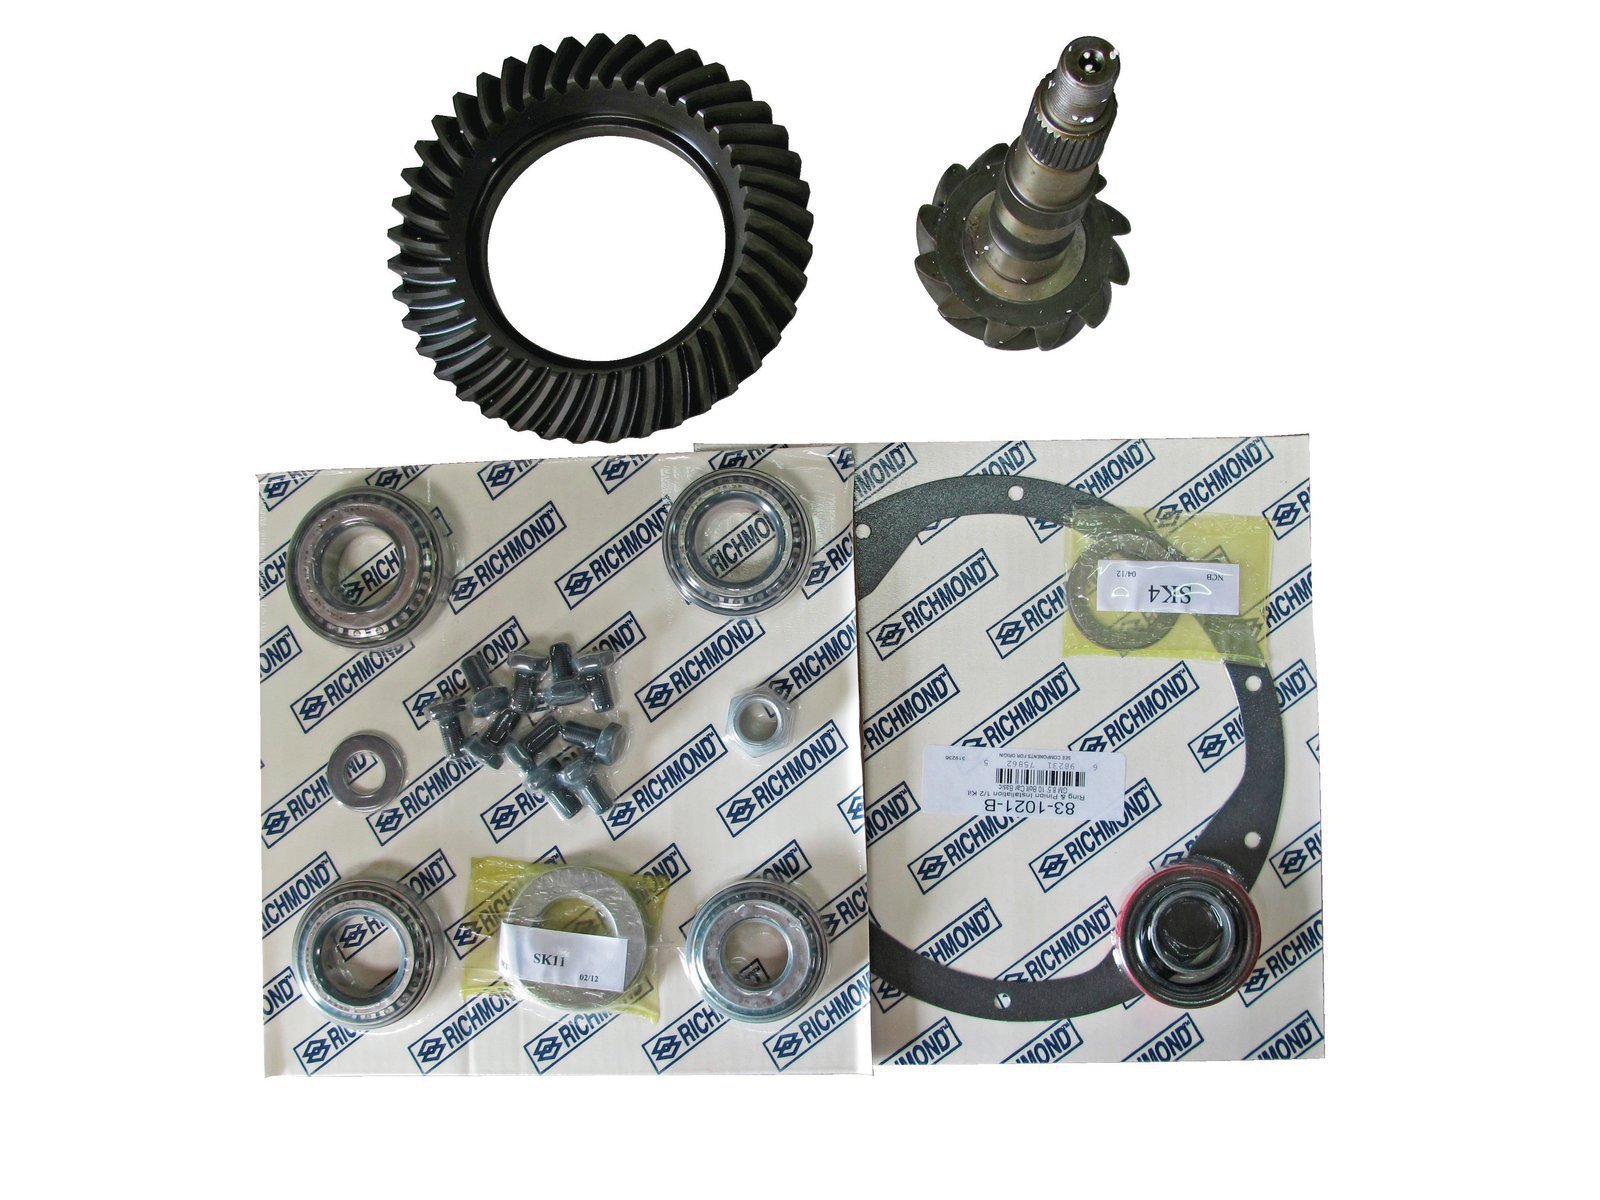 2. Summit can supply all the parts necessary to make an 8.5 better than new. There are a variety of ratios available, GM offered gear sets ranging from 2.40:1 to 4.10:1.